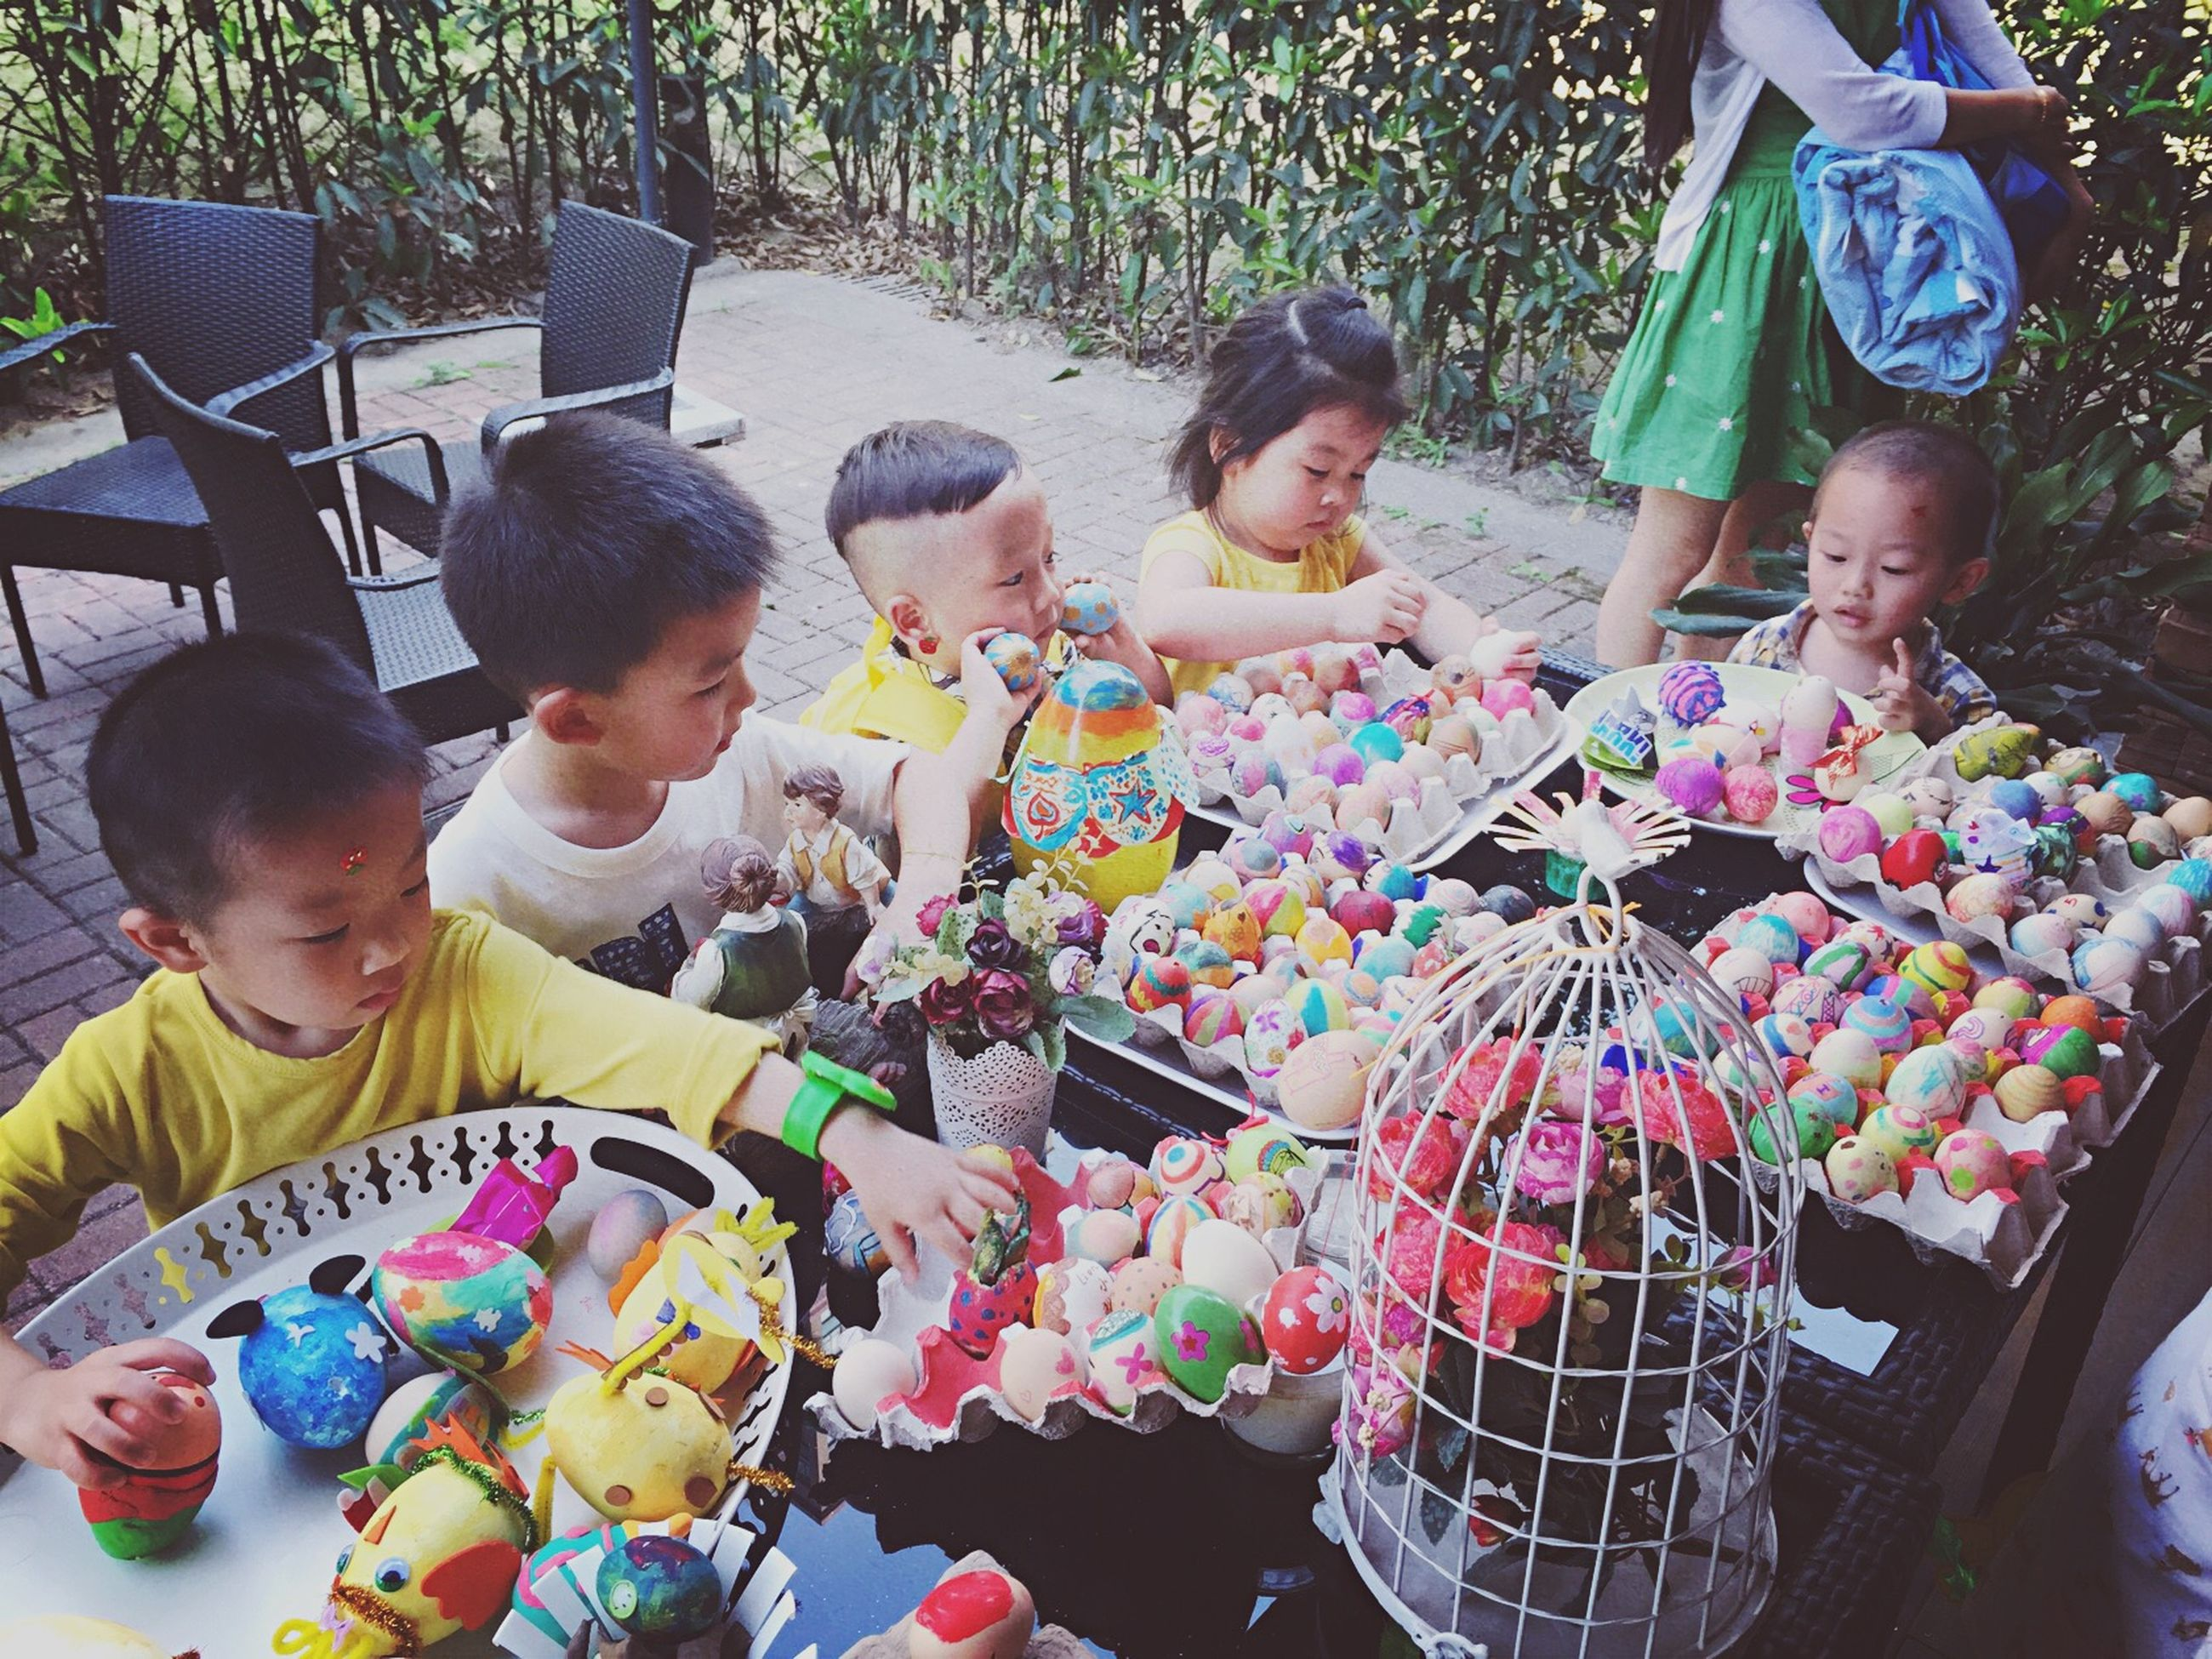 lifestyles, togetherness, leisure activity, childhood, boys, love, bonding, men, elementary age, casual clothing, sitting, holding, friendship, fun, girls, enjoyment, high angle view, playing